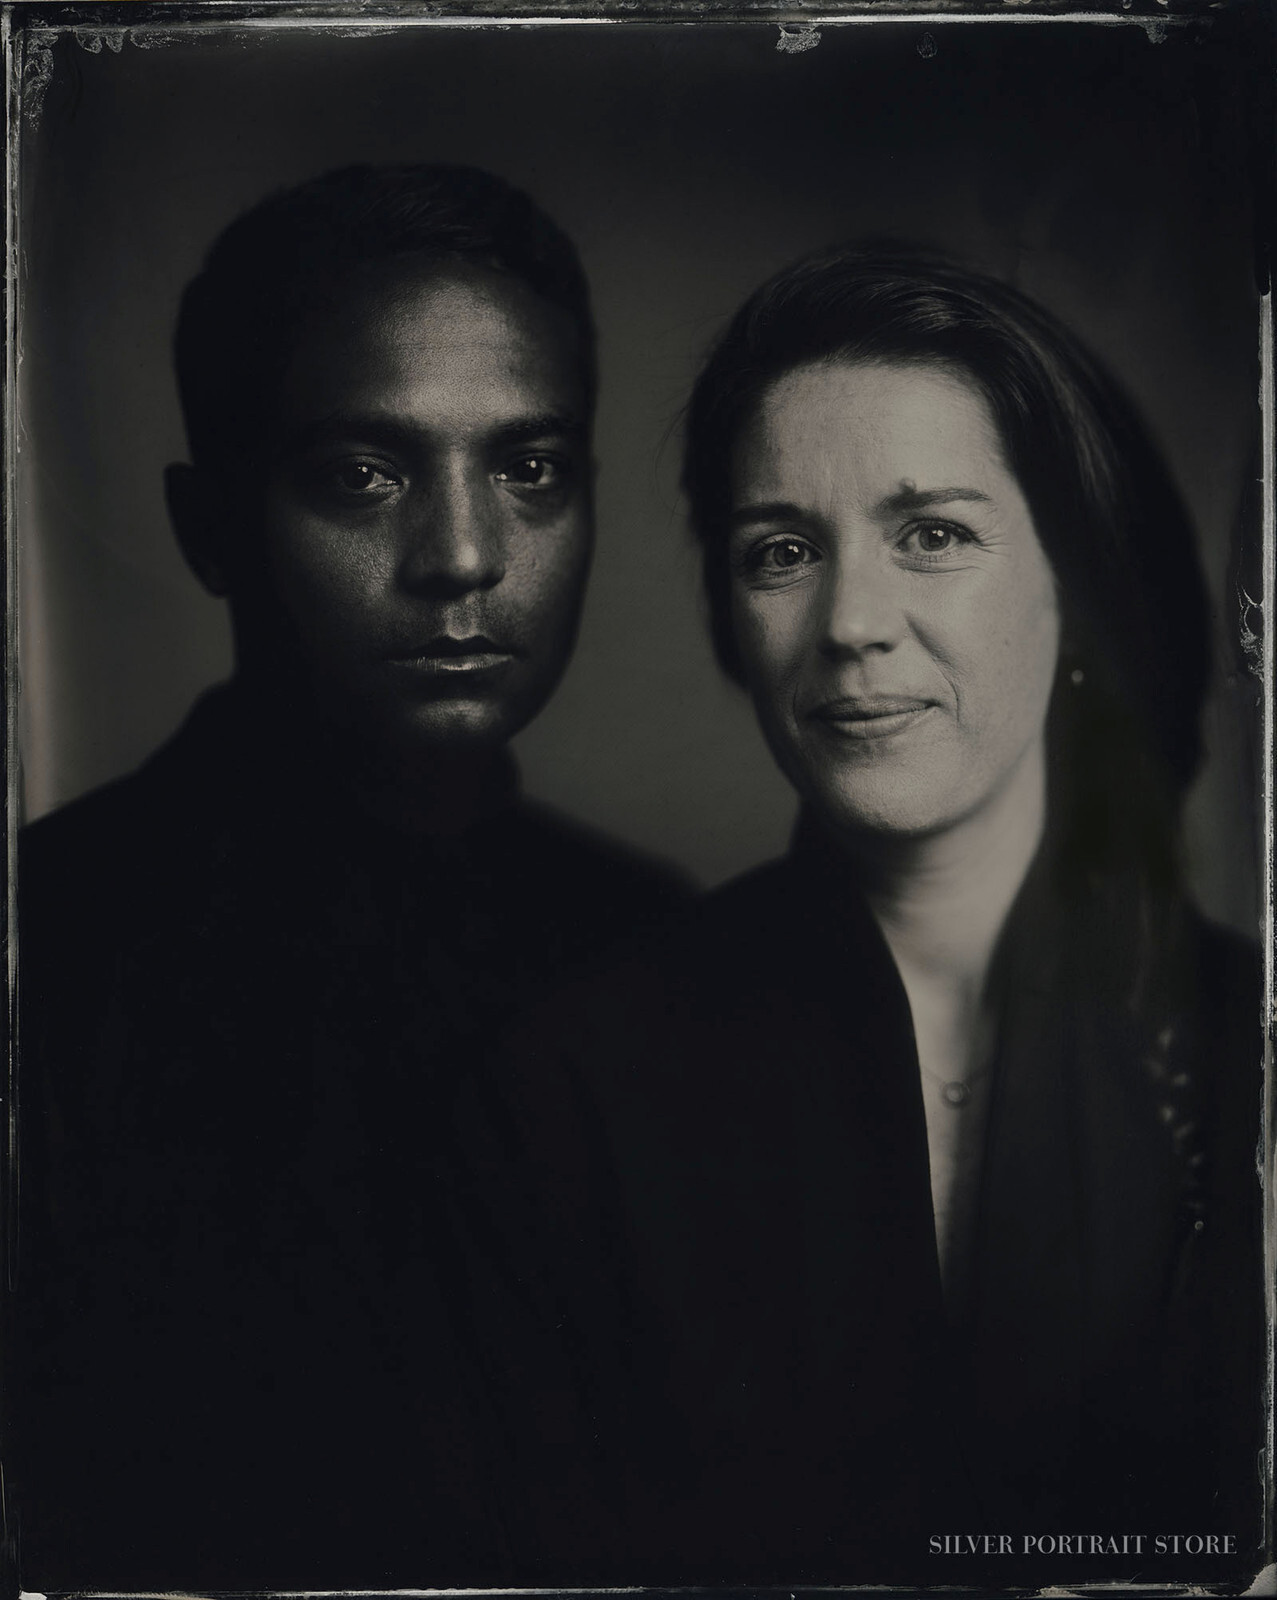 Christopher & Anouk-Silver Portrait Store-scan from Wet plate collodion-Tintype 20 x 25 cm.